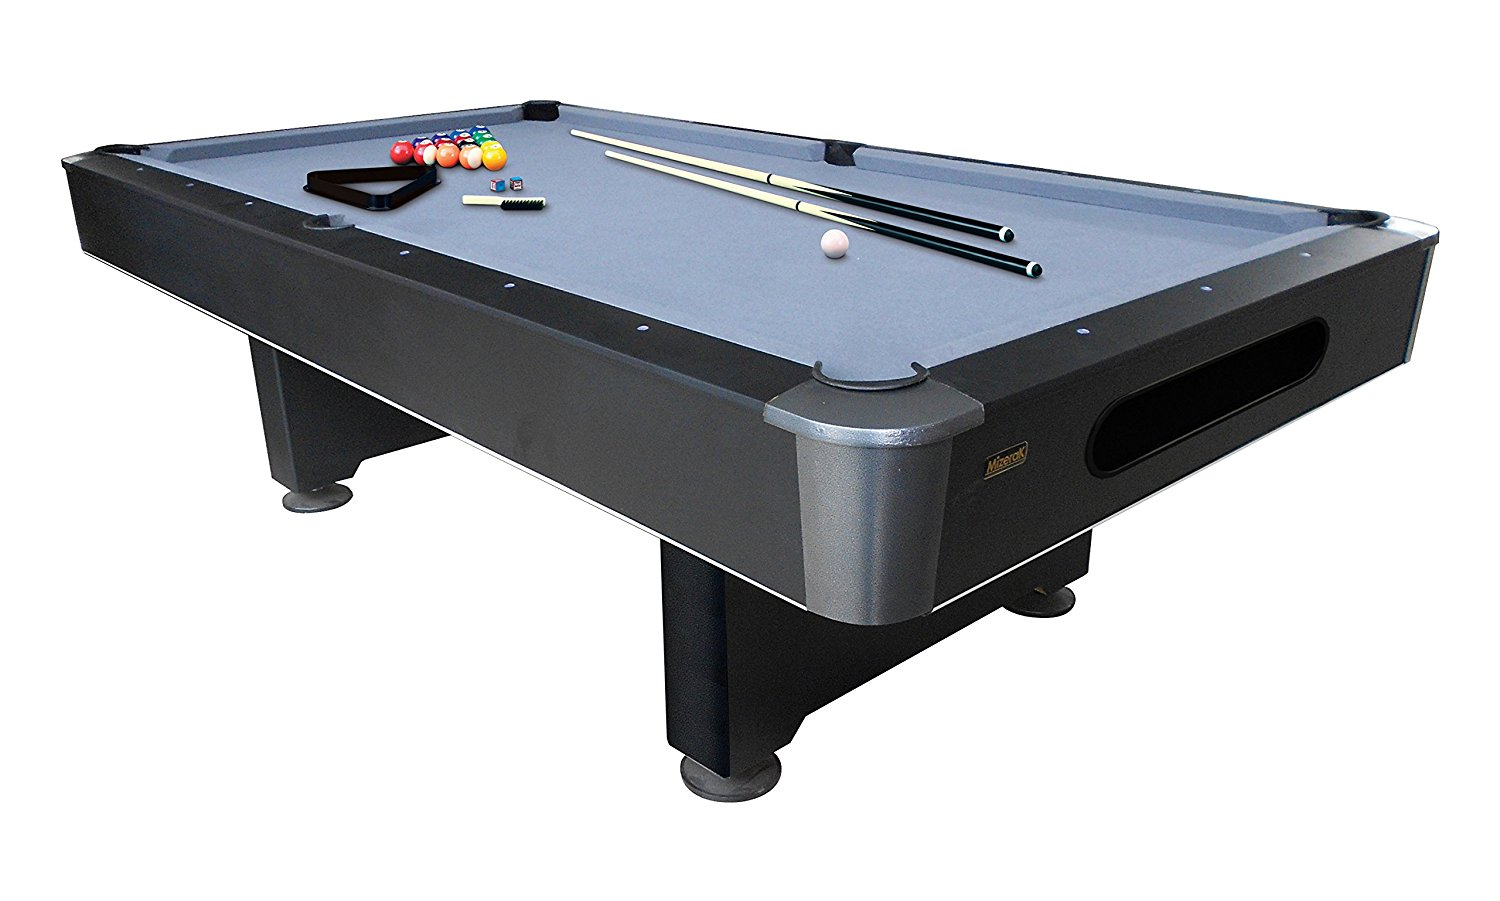 7 foot slate billiards table designer tables reference for 10 foot billiard table